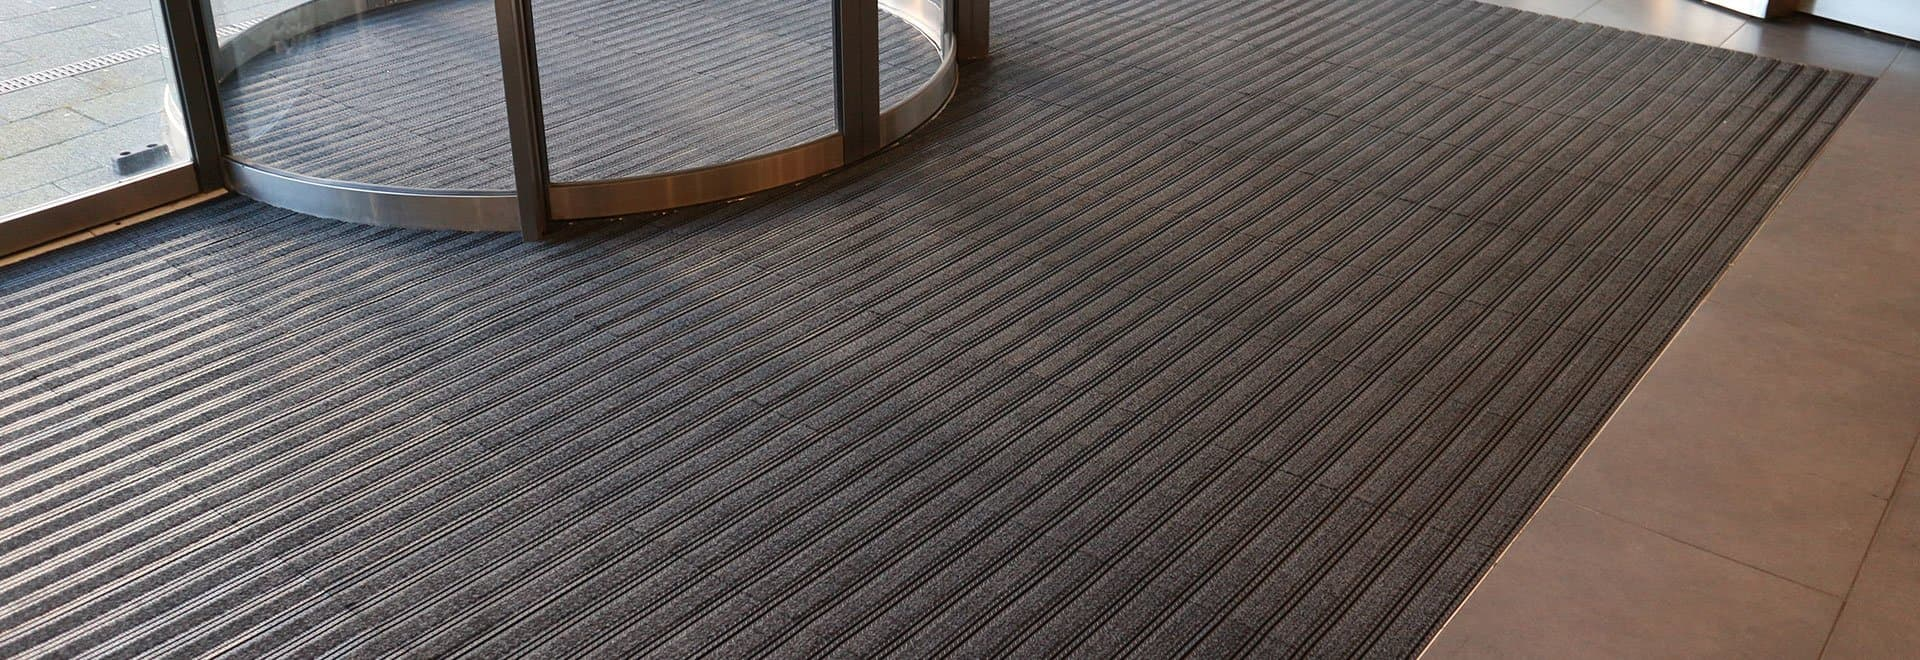 Quick & easy to install entrance matting tiles